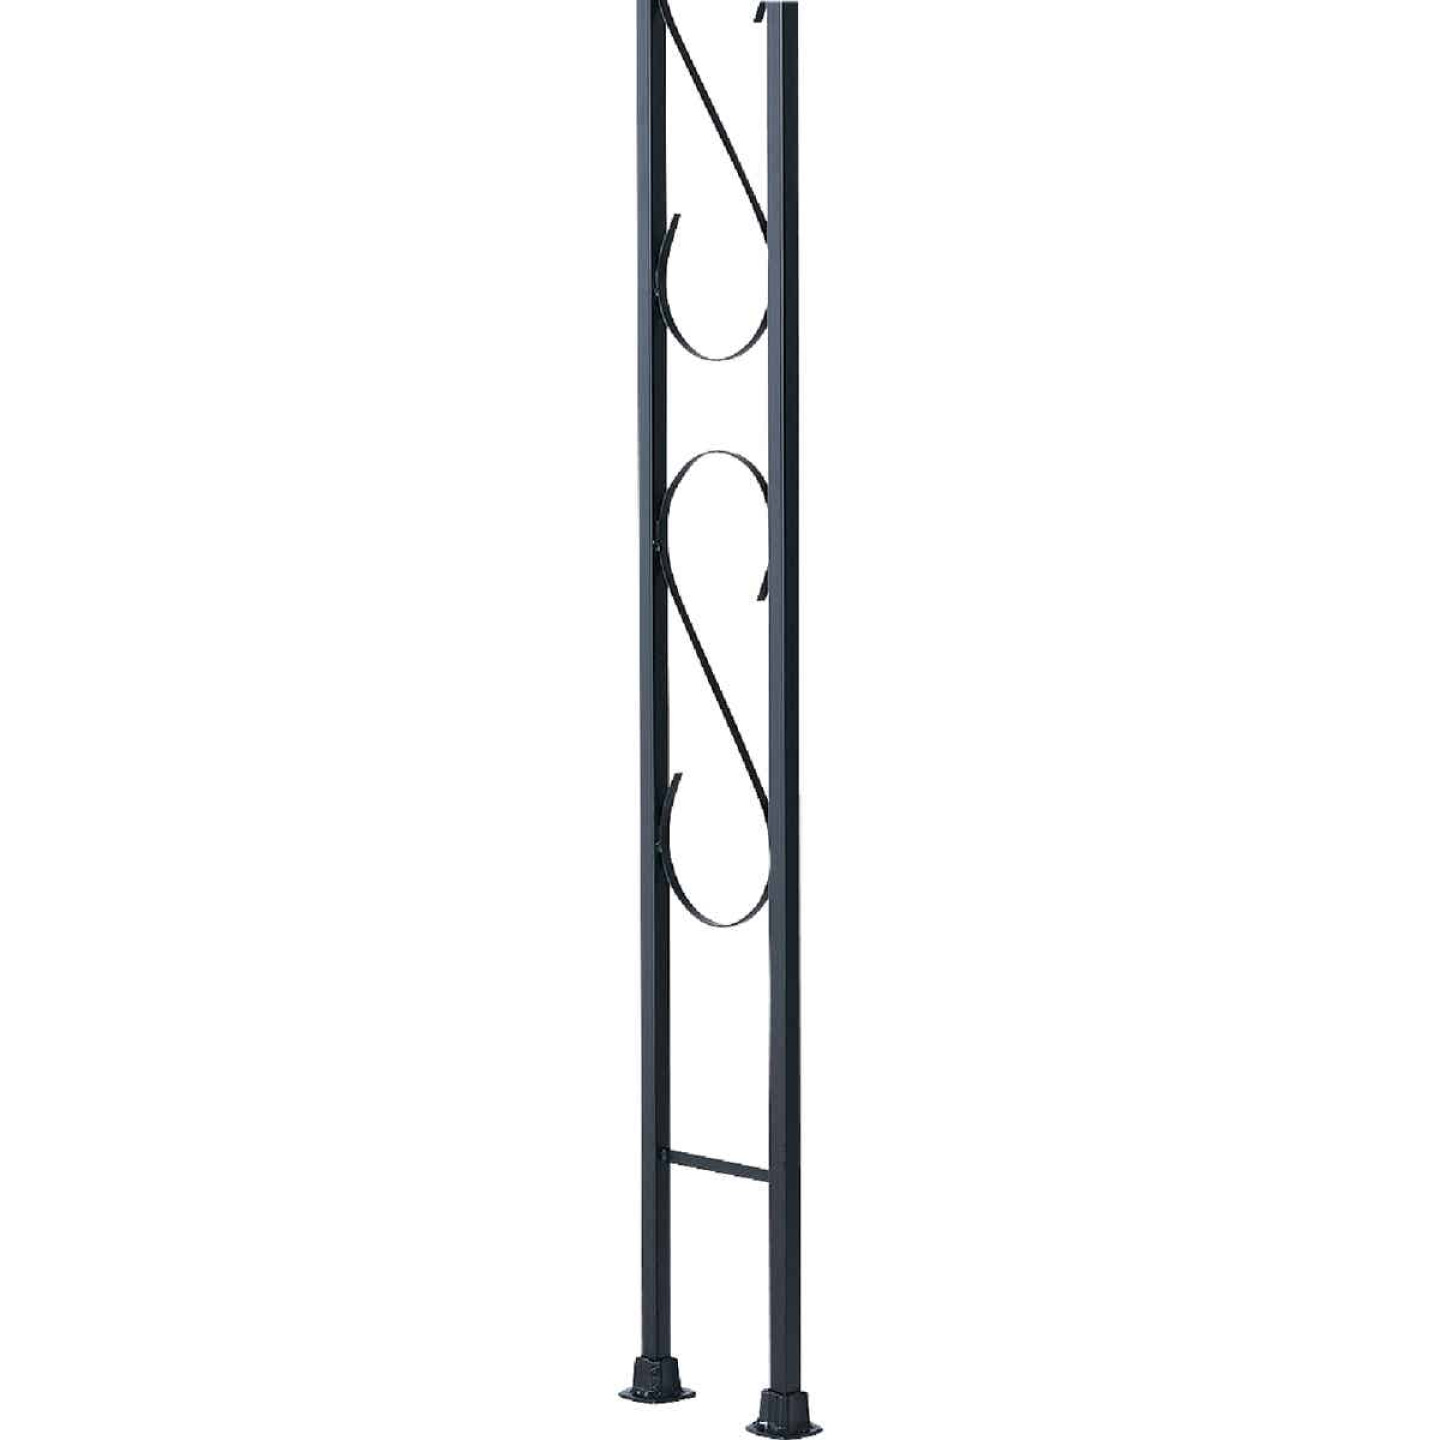 Gilpin Newport 9-1/2 In. x 8 Ft. Wrought Iron Railing Corner Iron Ornamental Column Image 1